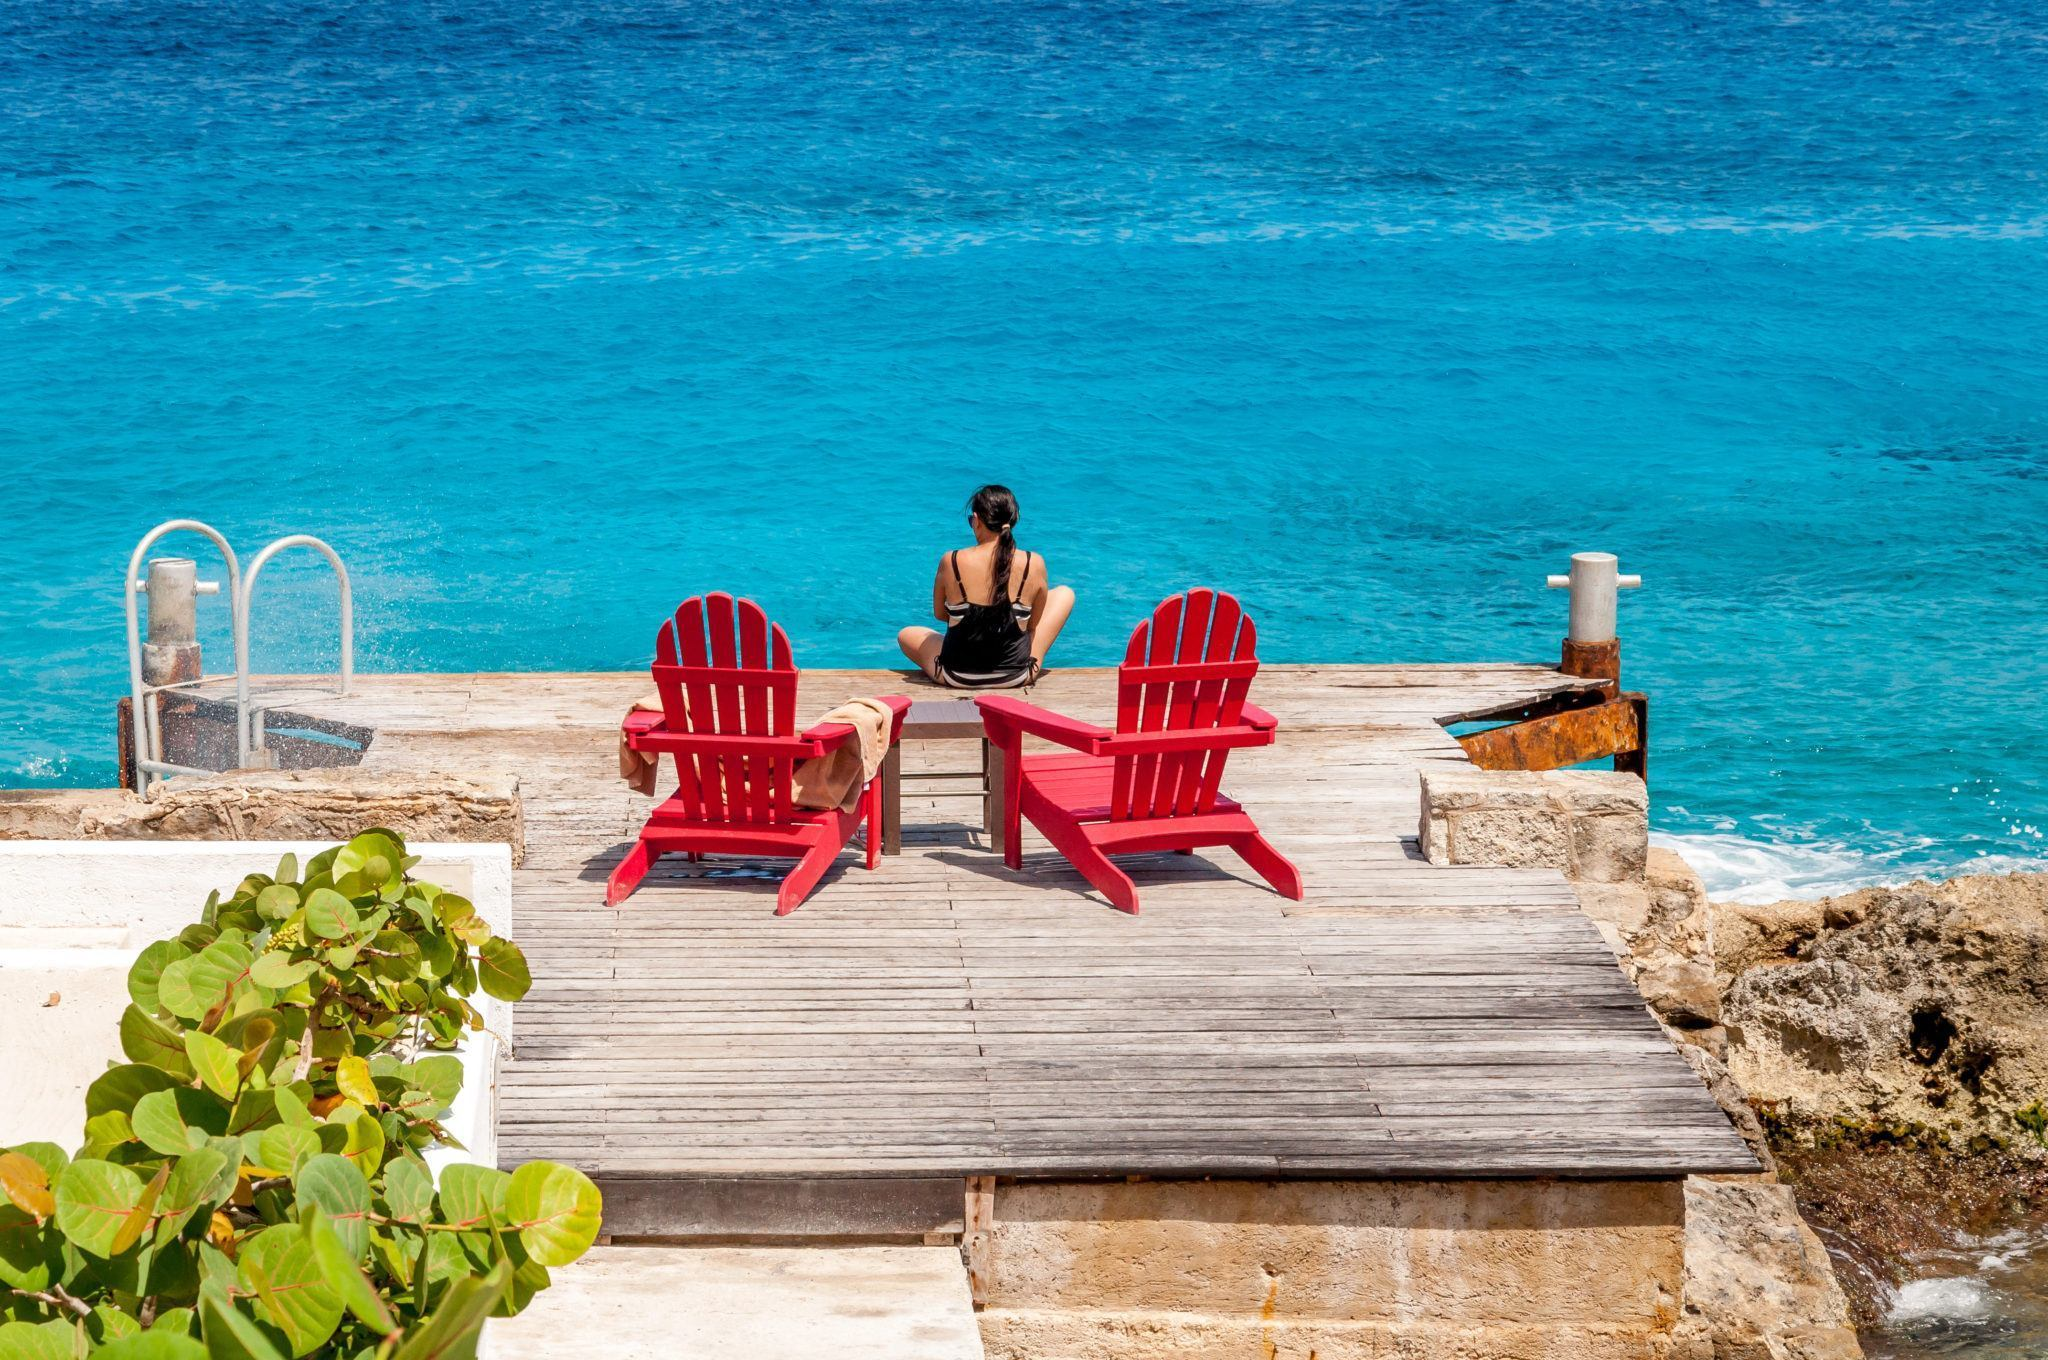 Woman sitting on a small dock with red beach chairs